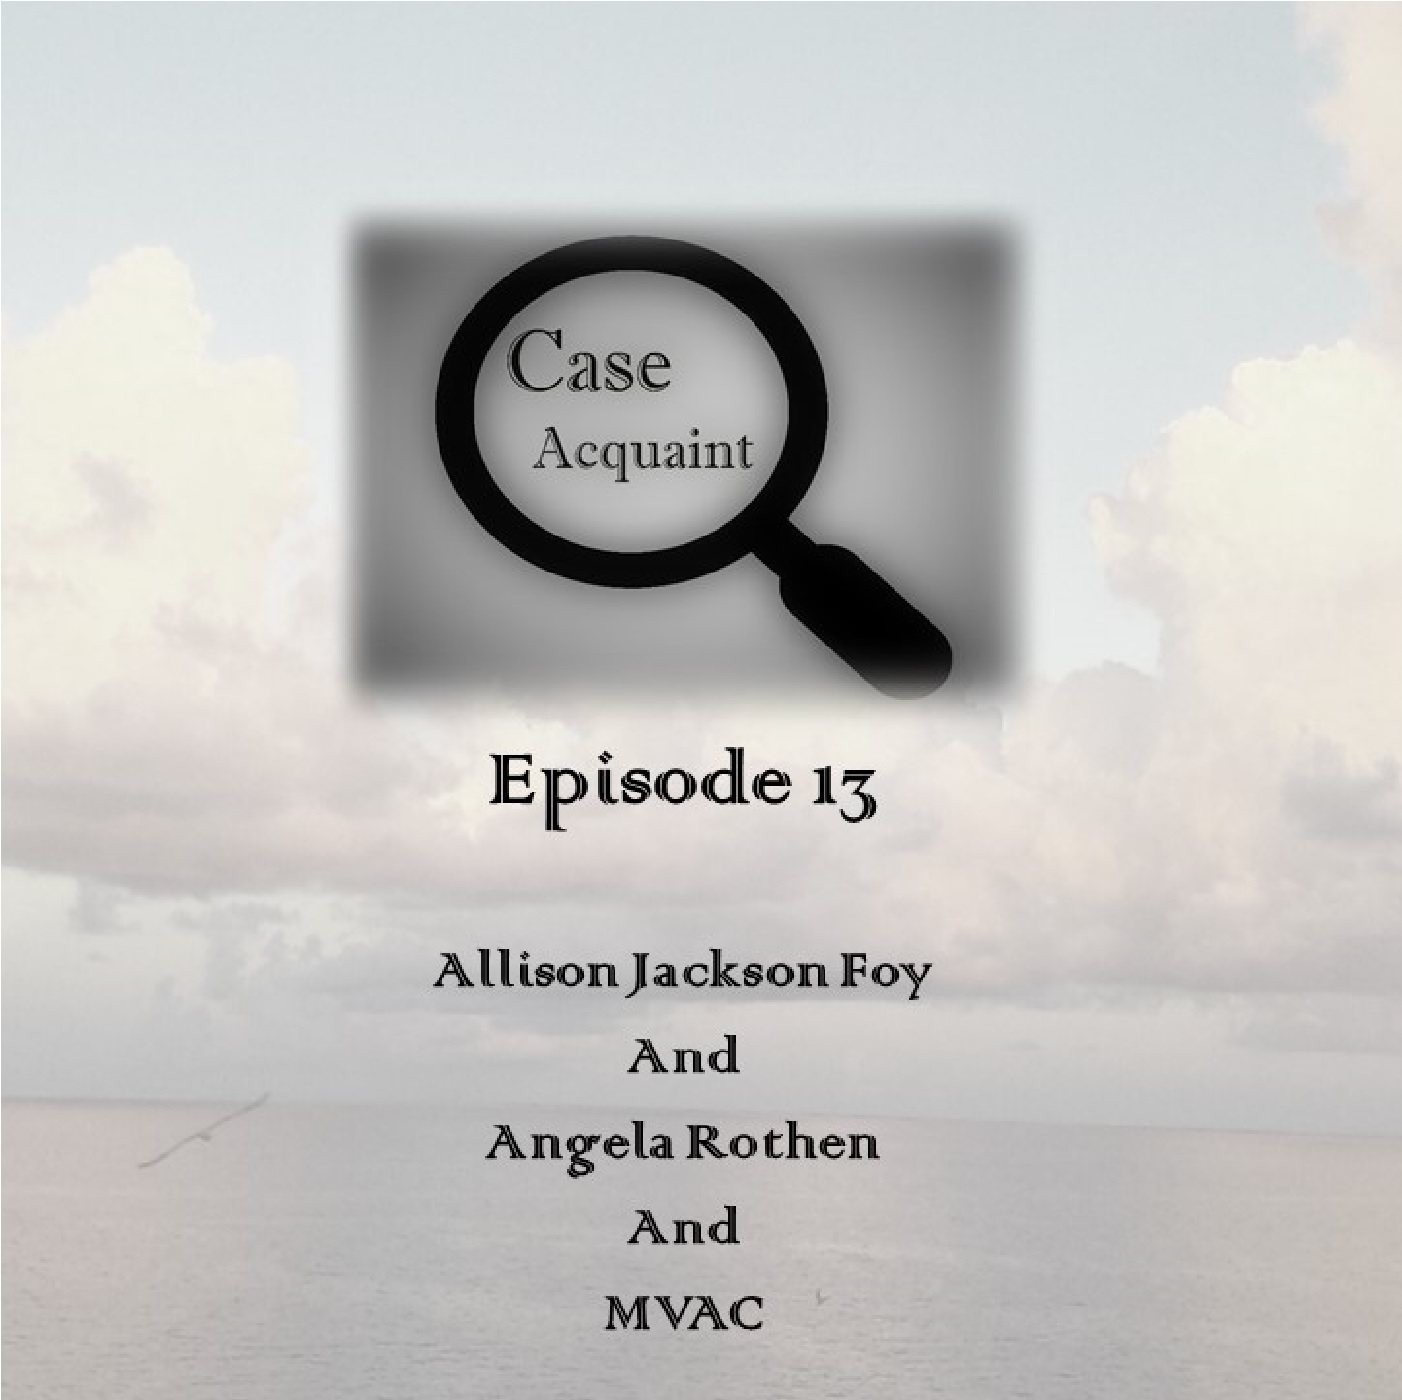 Episode 13 Allison Jackson Foy and the MVAC